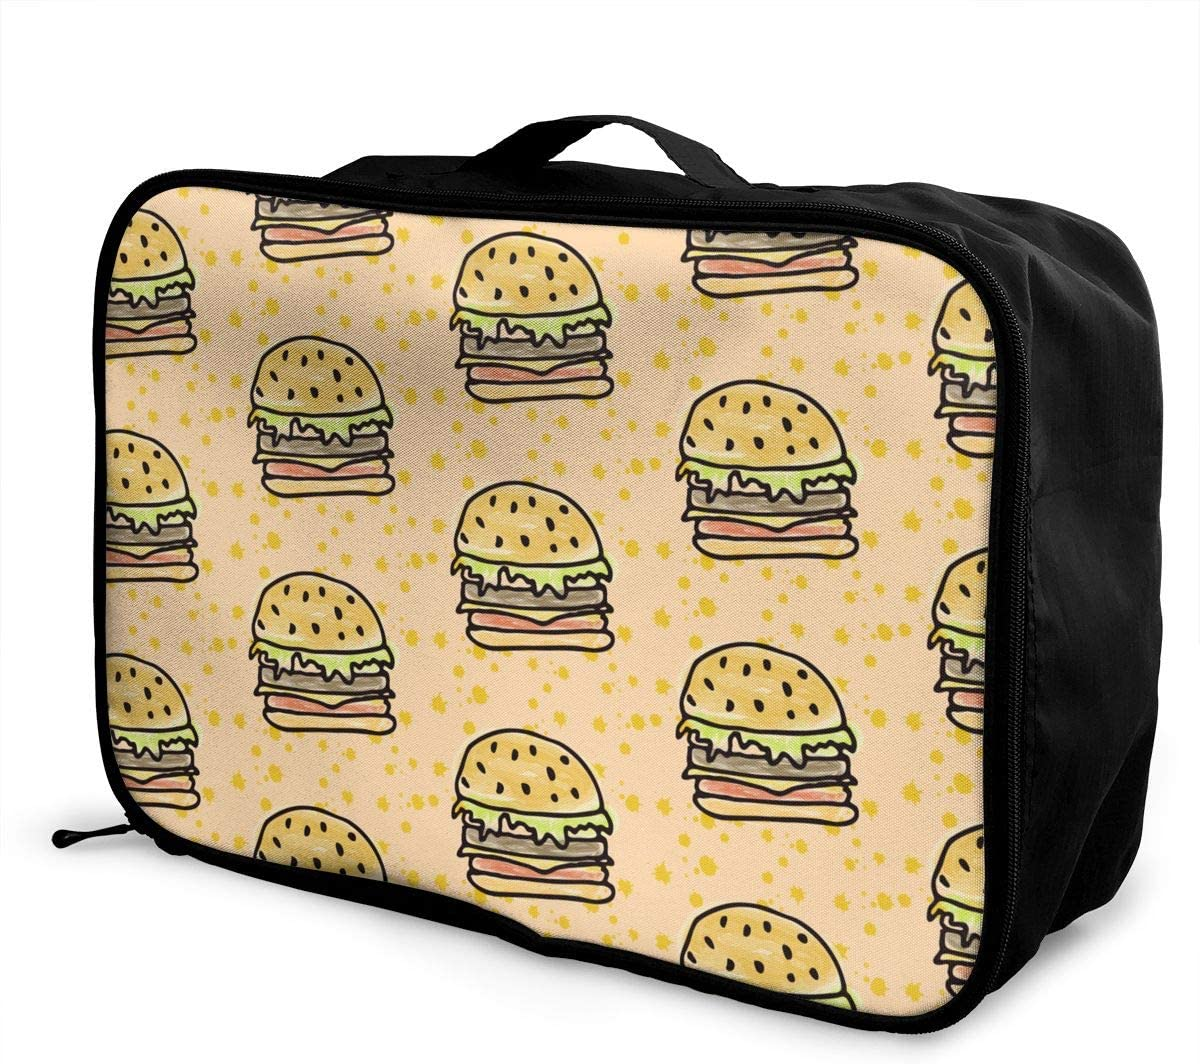 Anime Hamburger Travel Carry-on Luggage Weekender Bag Overnight Tote Flight Duffel In Trolley Handle